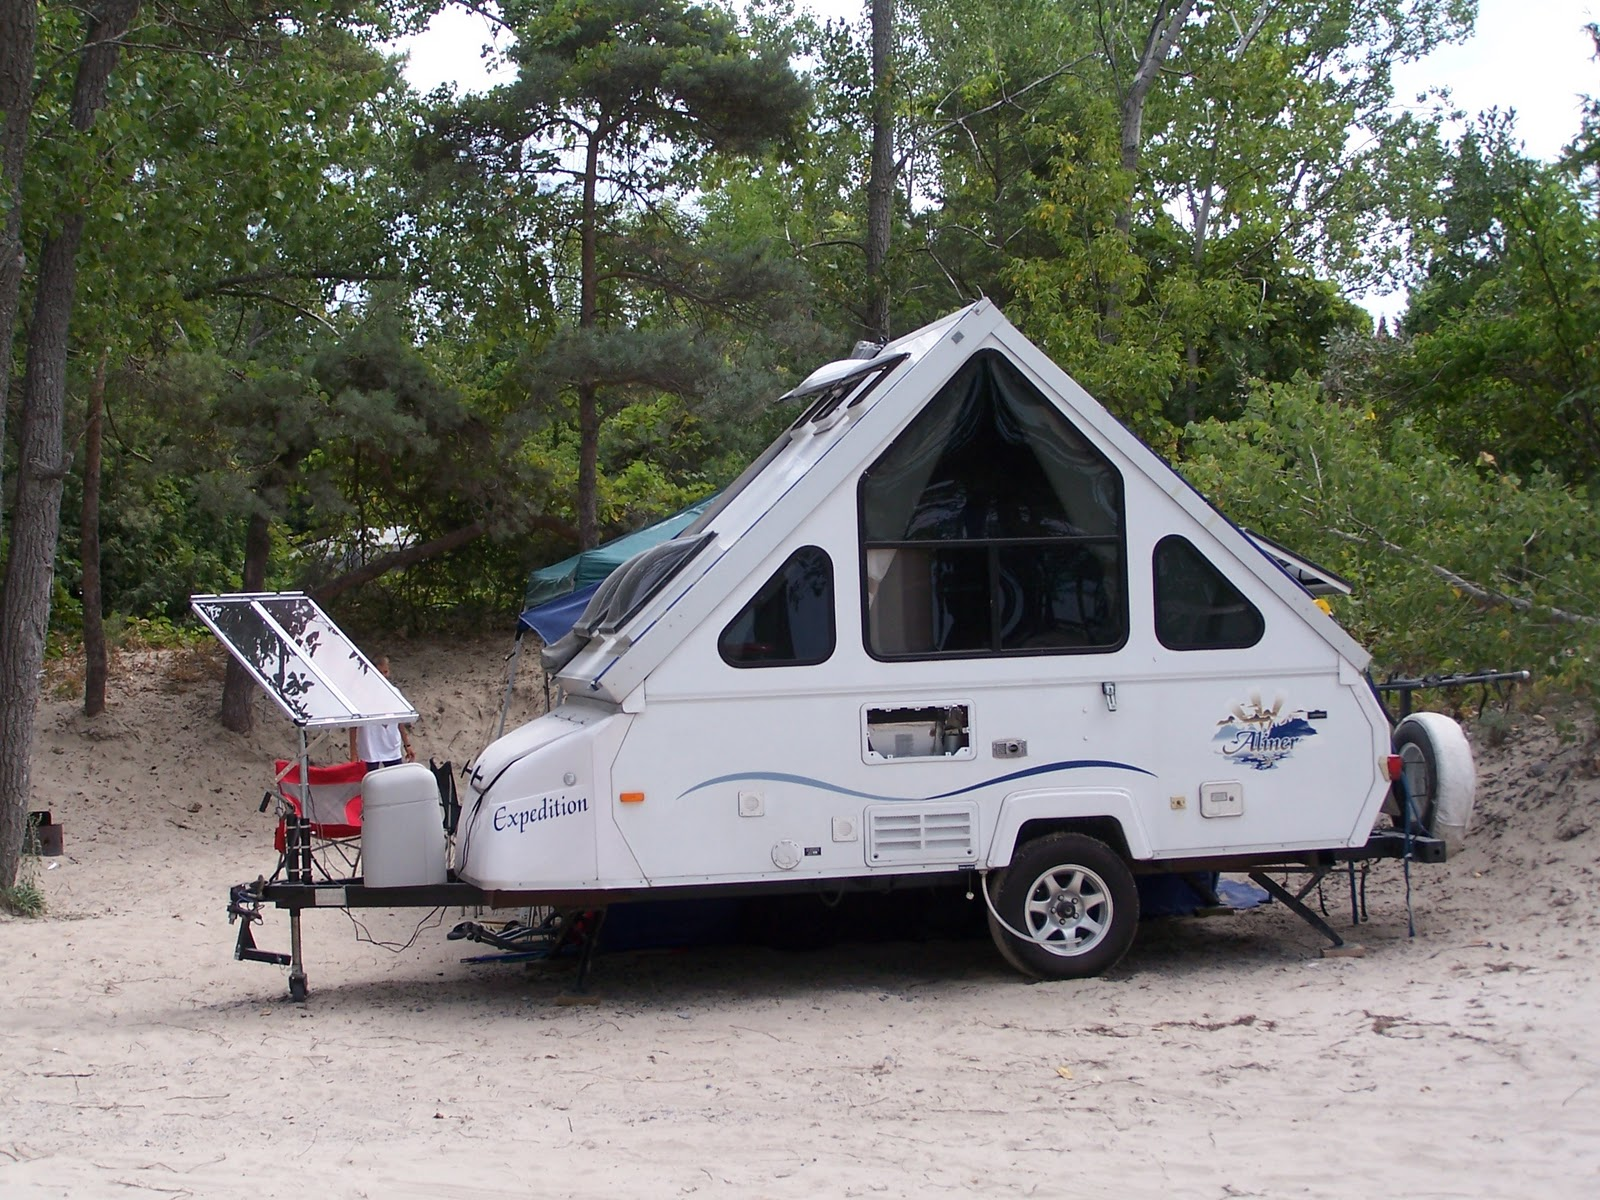 Craigslist Aliner Alite 400 For Sale By Owner | Autos Post